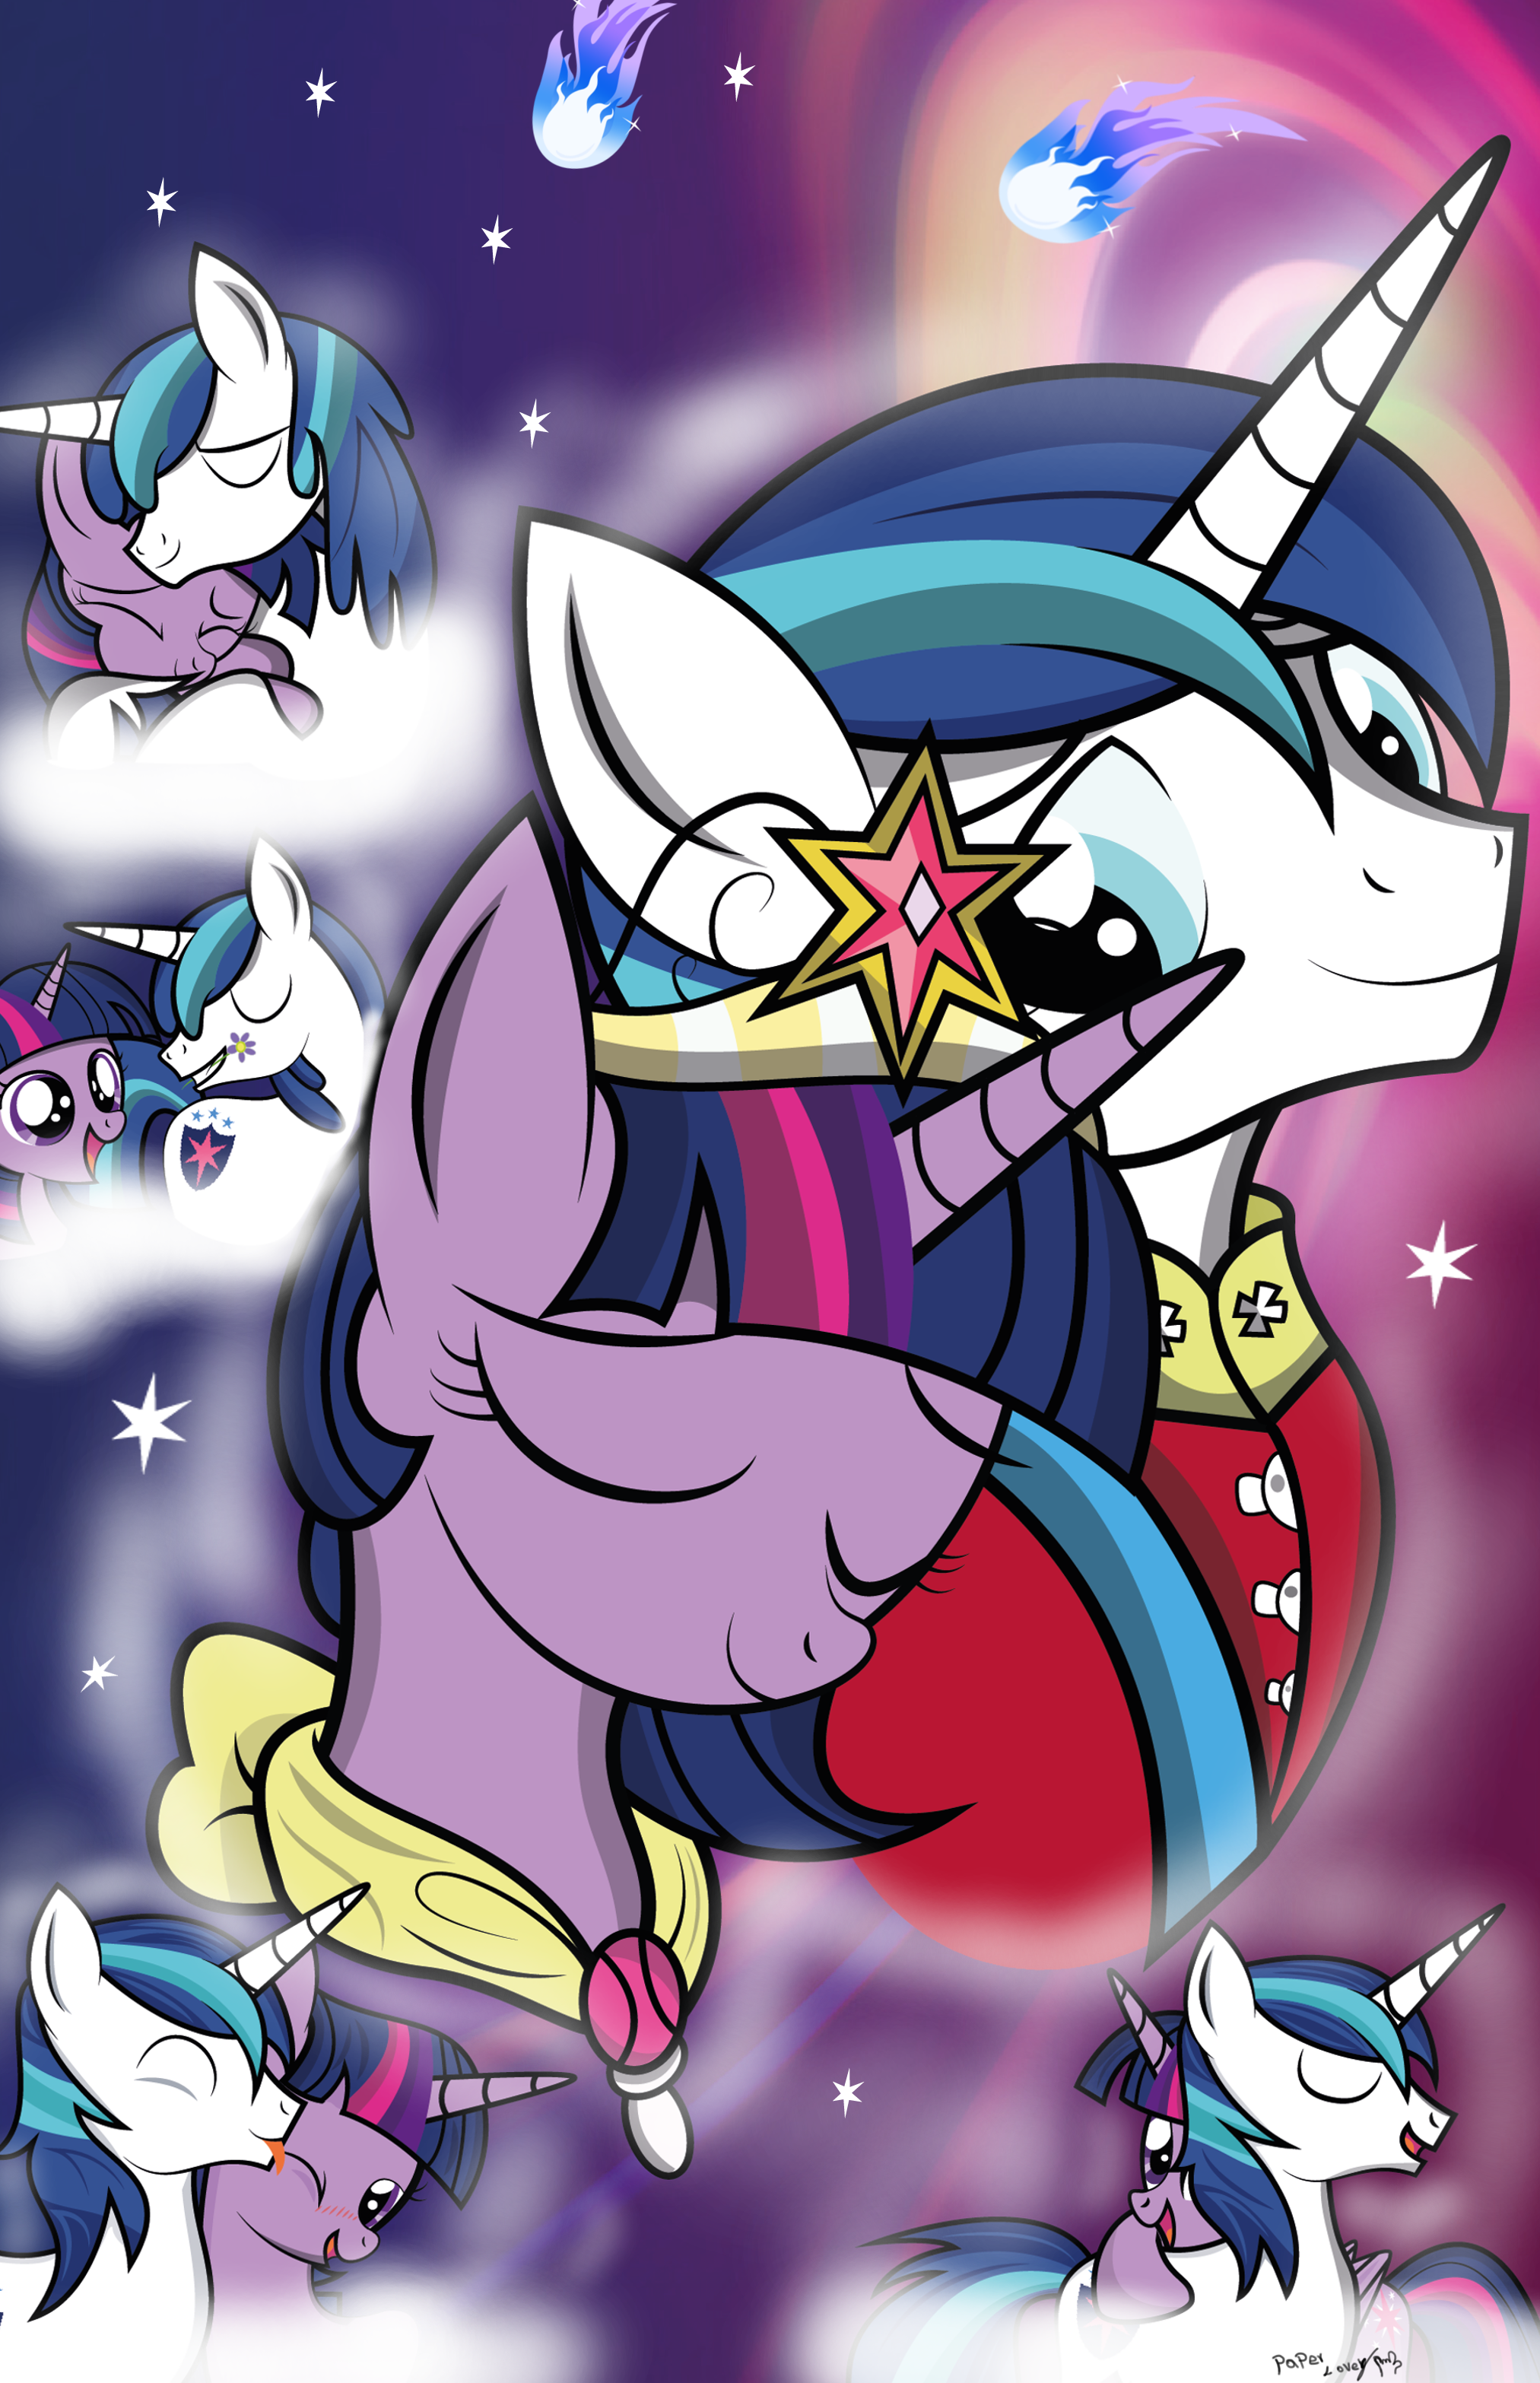 801739__safe_twilight+sparkle_shipping_s